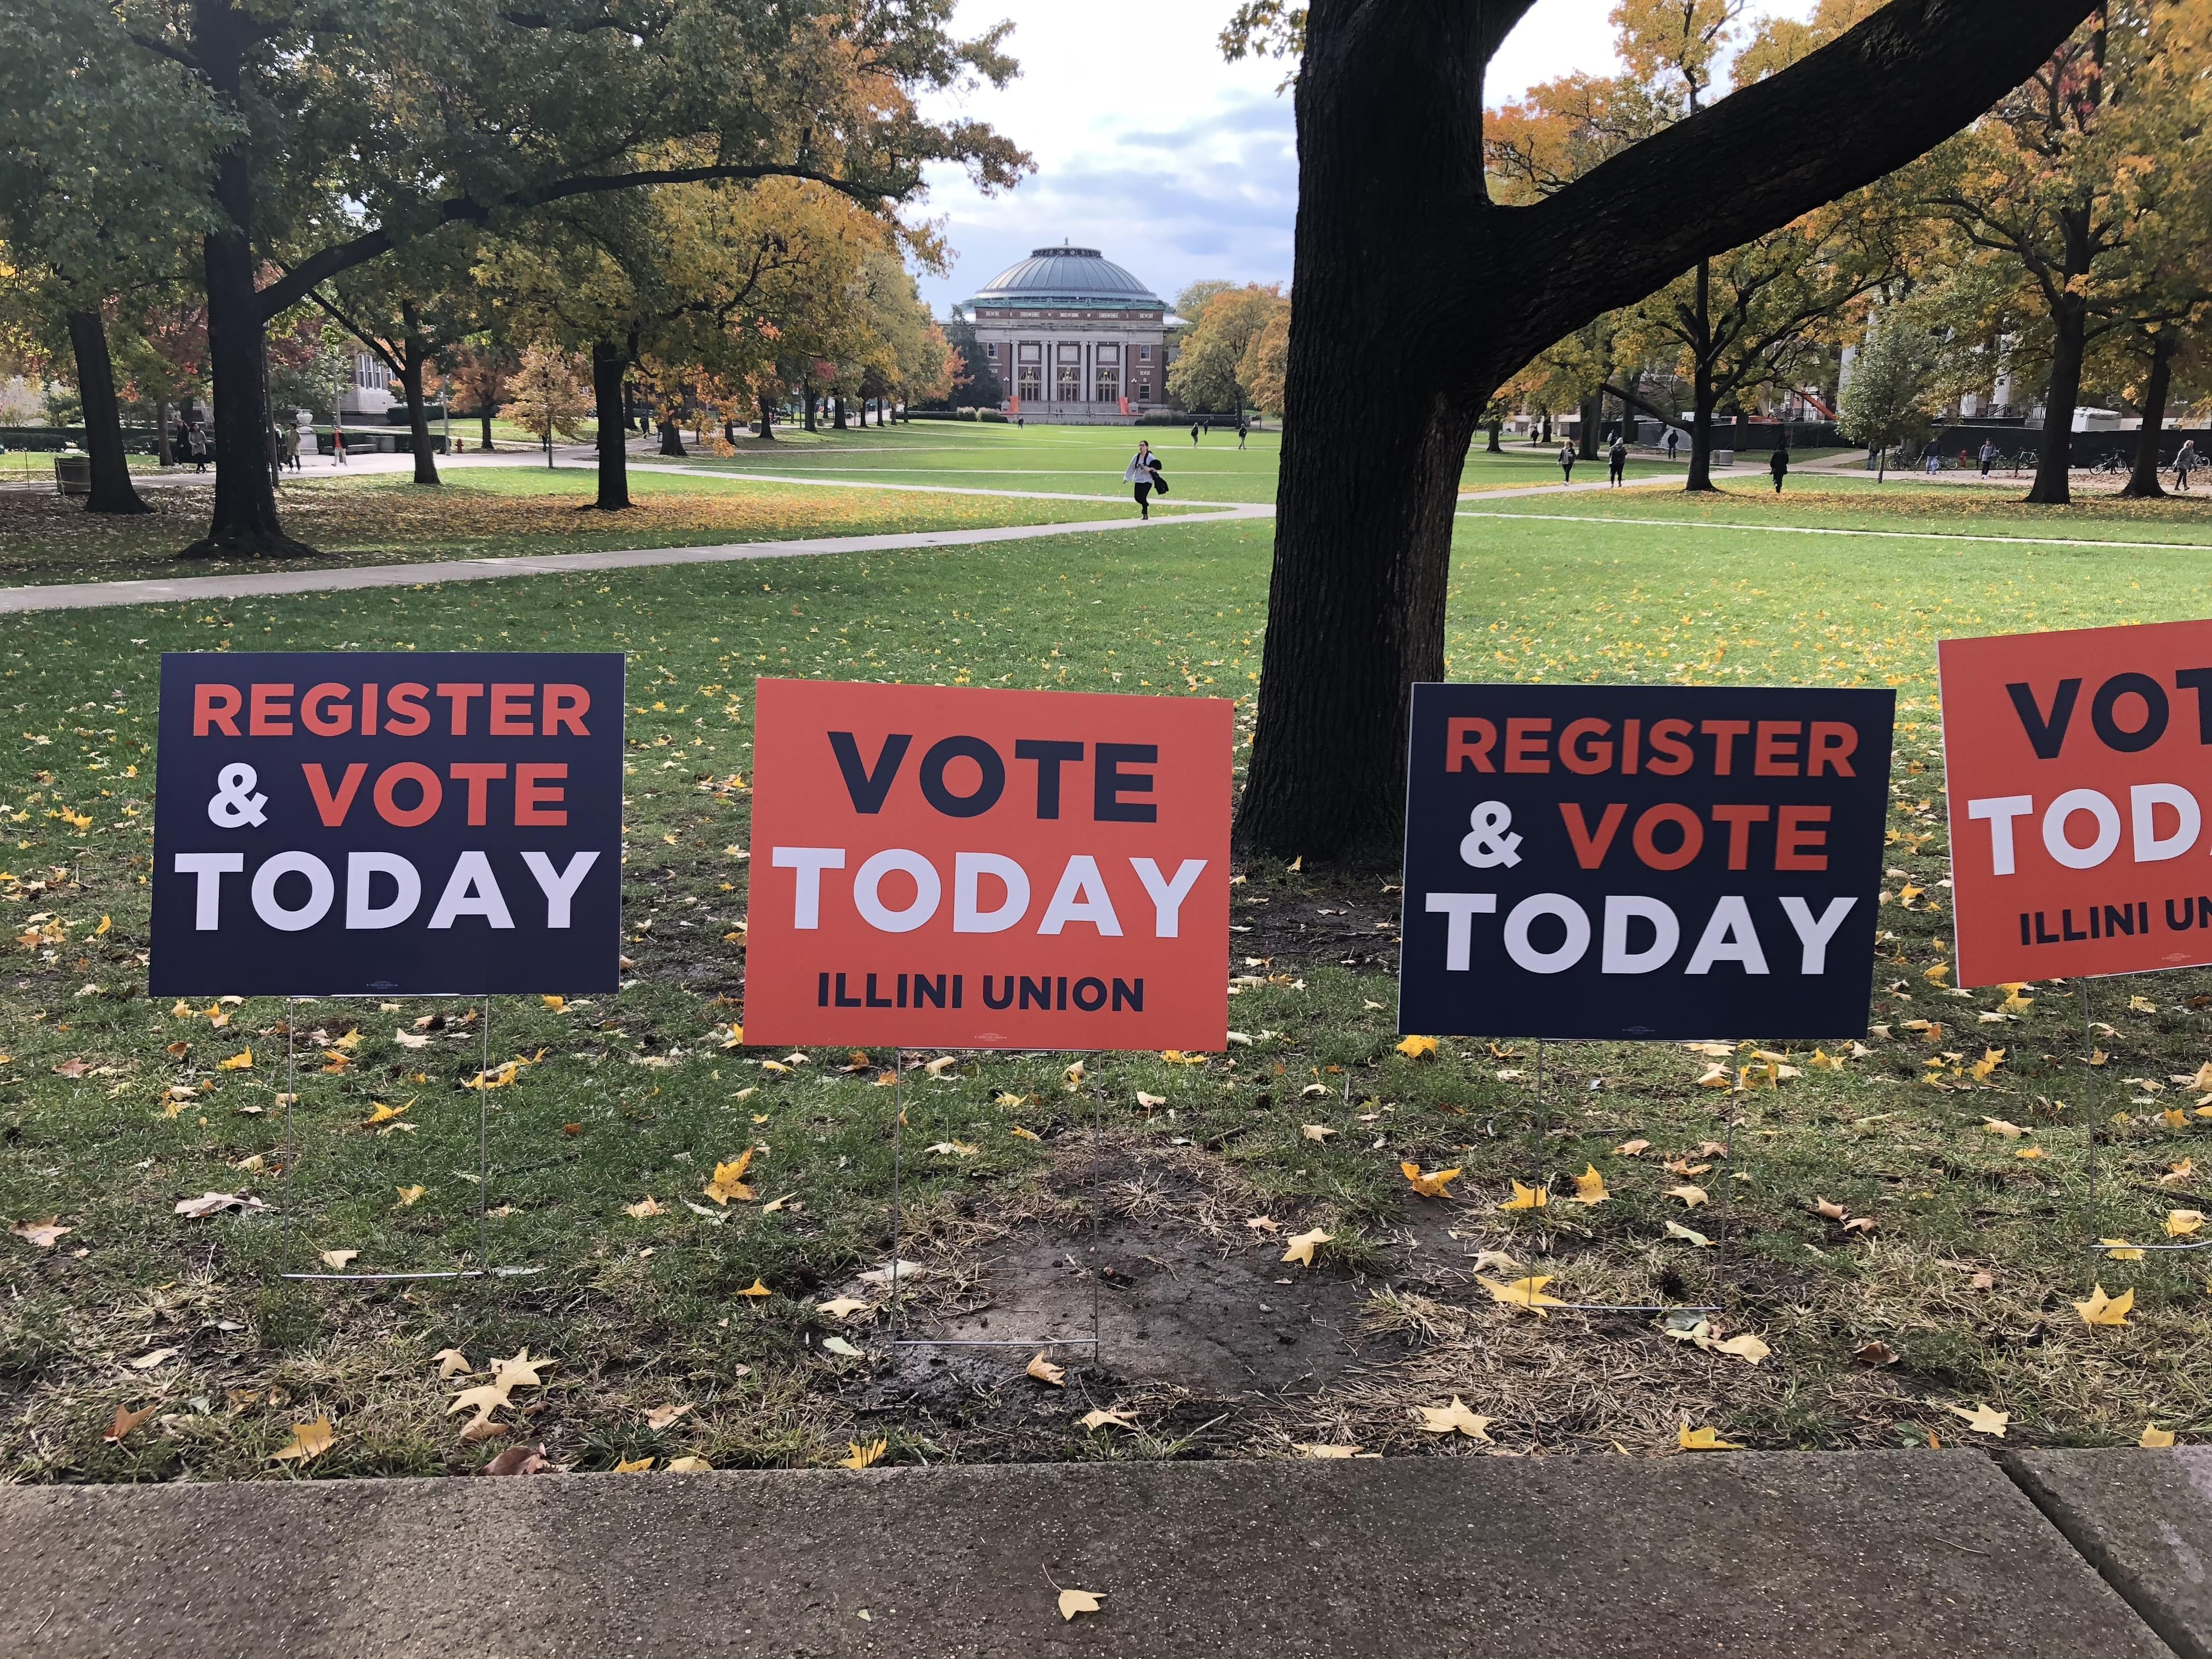 Signs outside the Illini Union for the November 2018 midterm election.